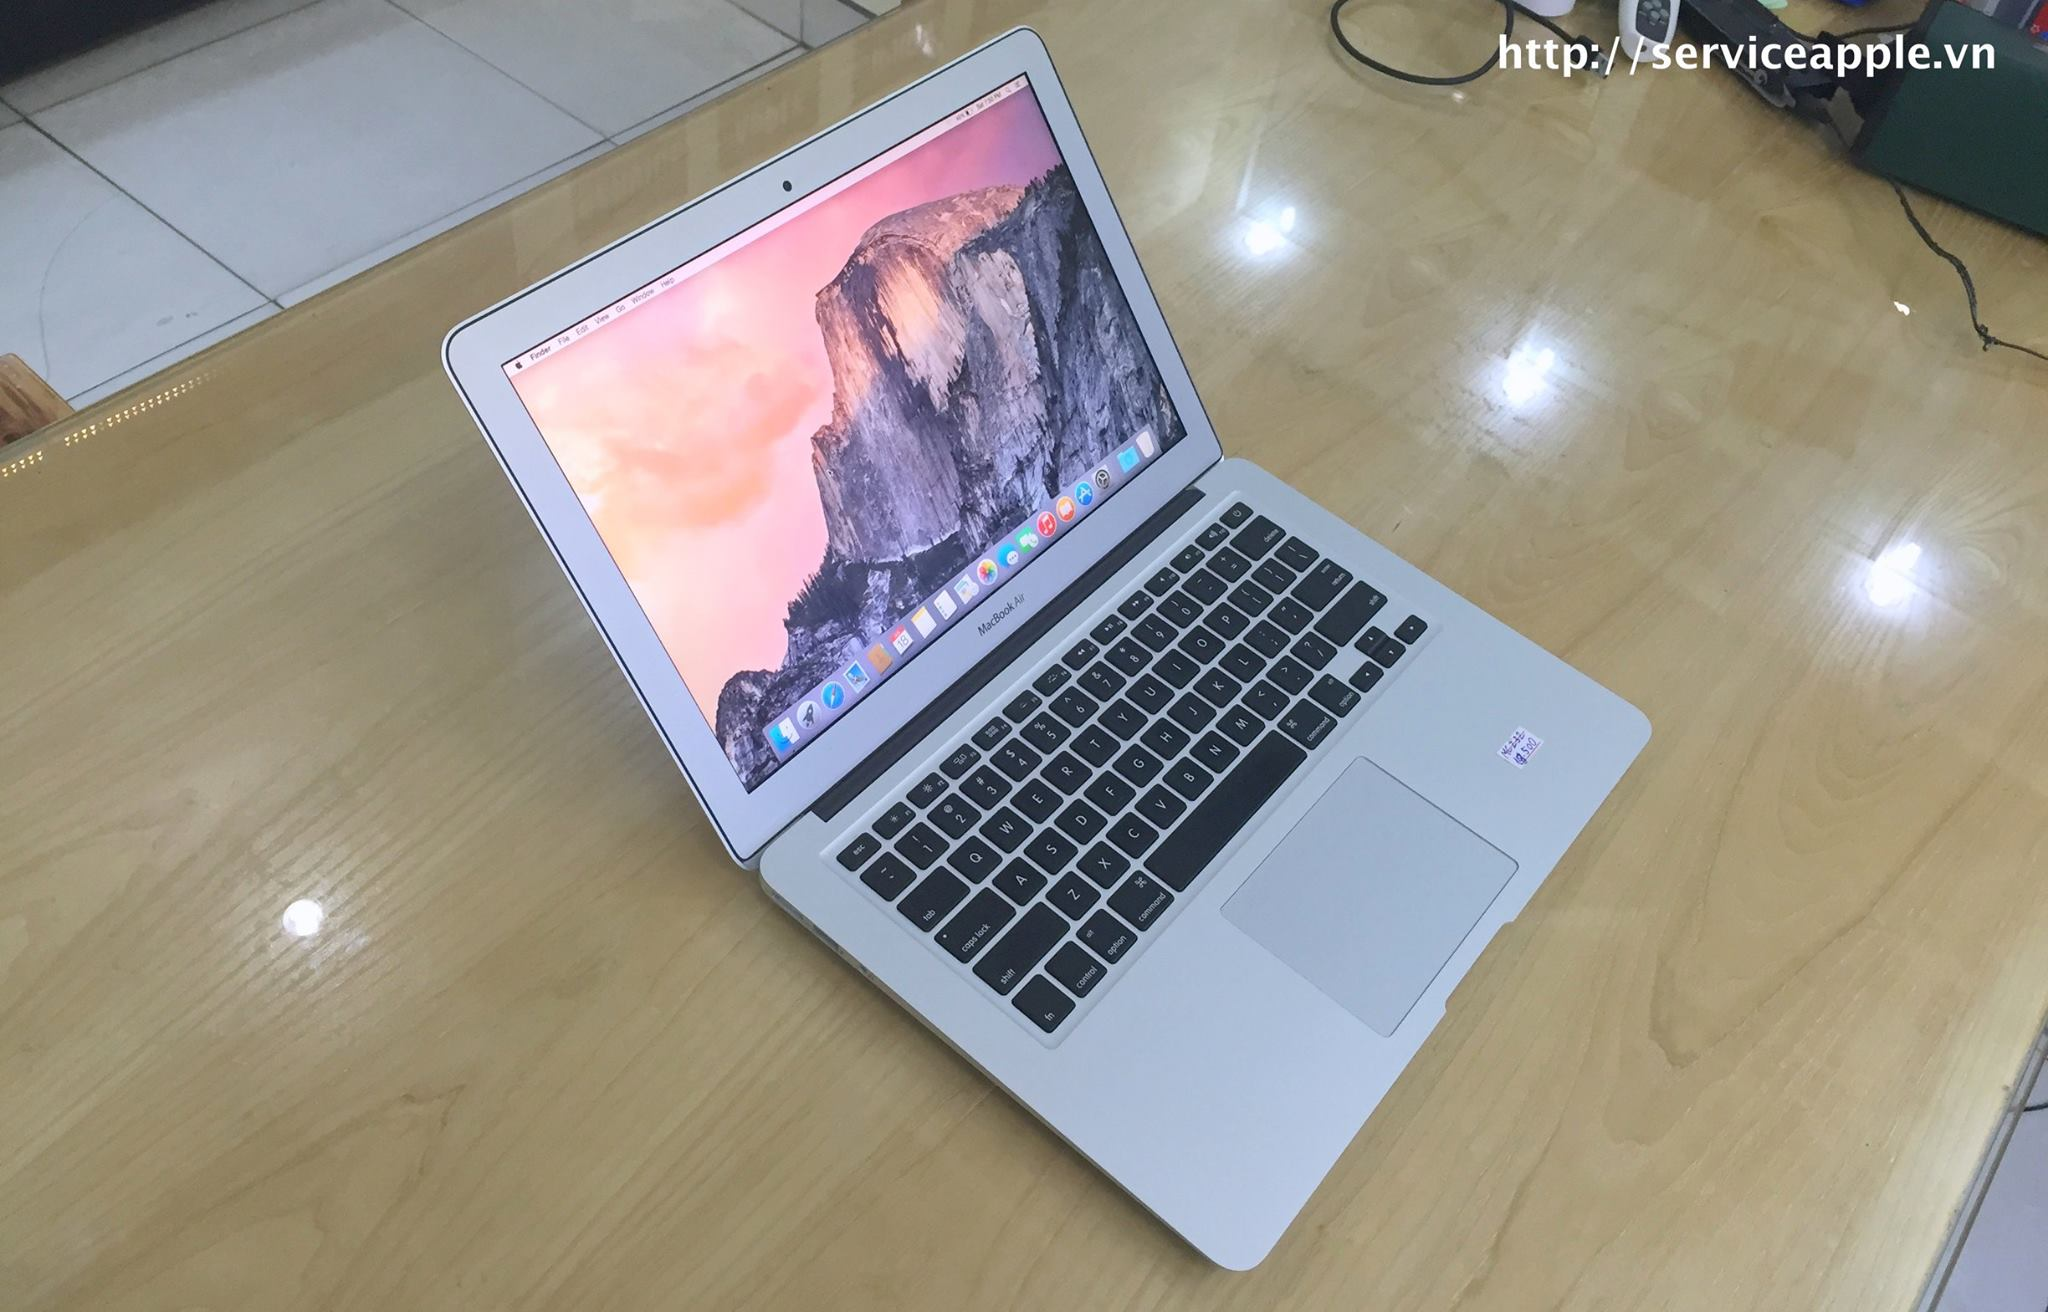 Macbook Air MD322 Full Option i7 2,0Ghz, 8GB Ram, SSD 512GB.jpg